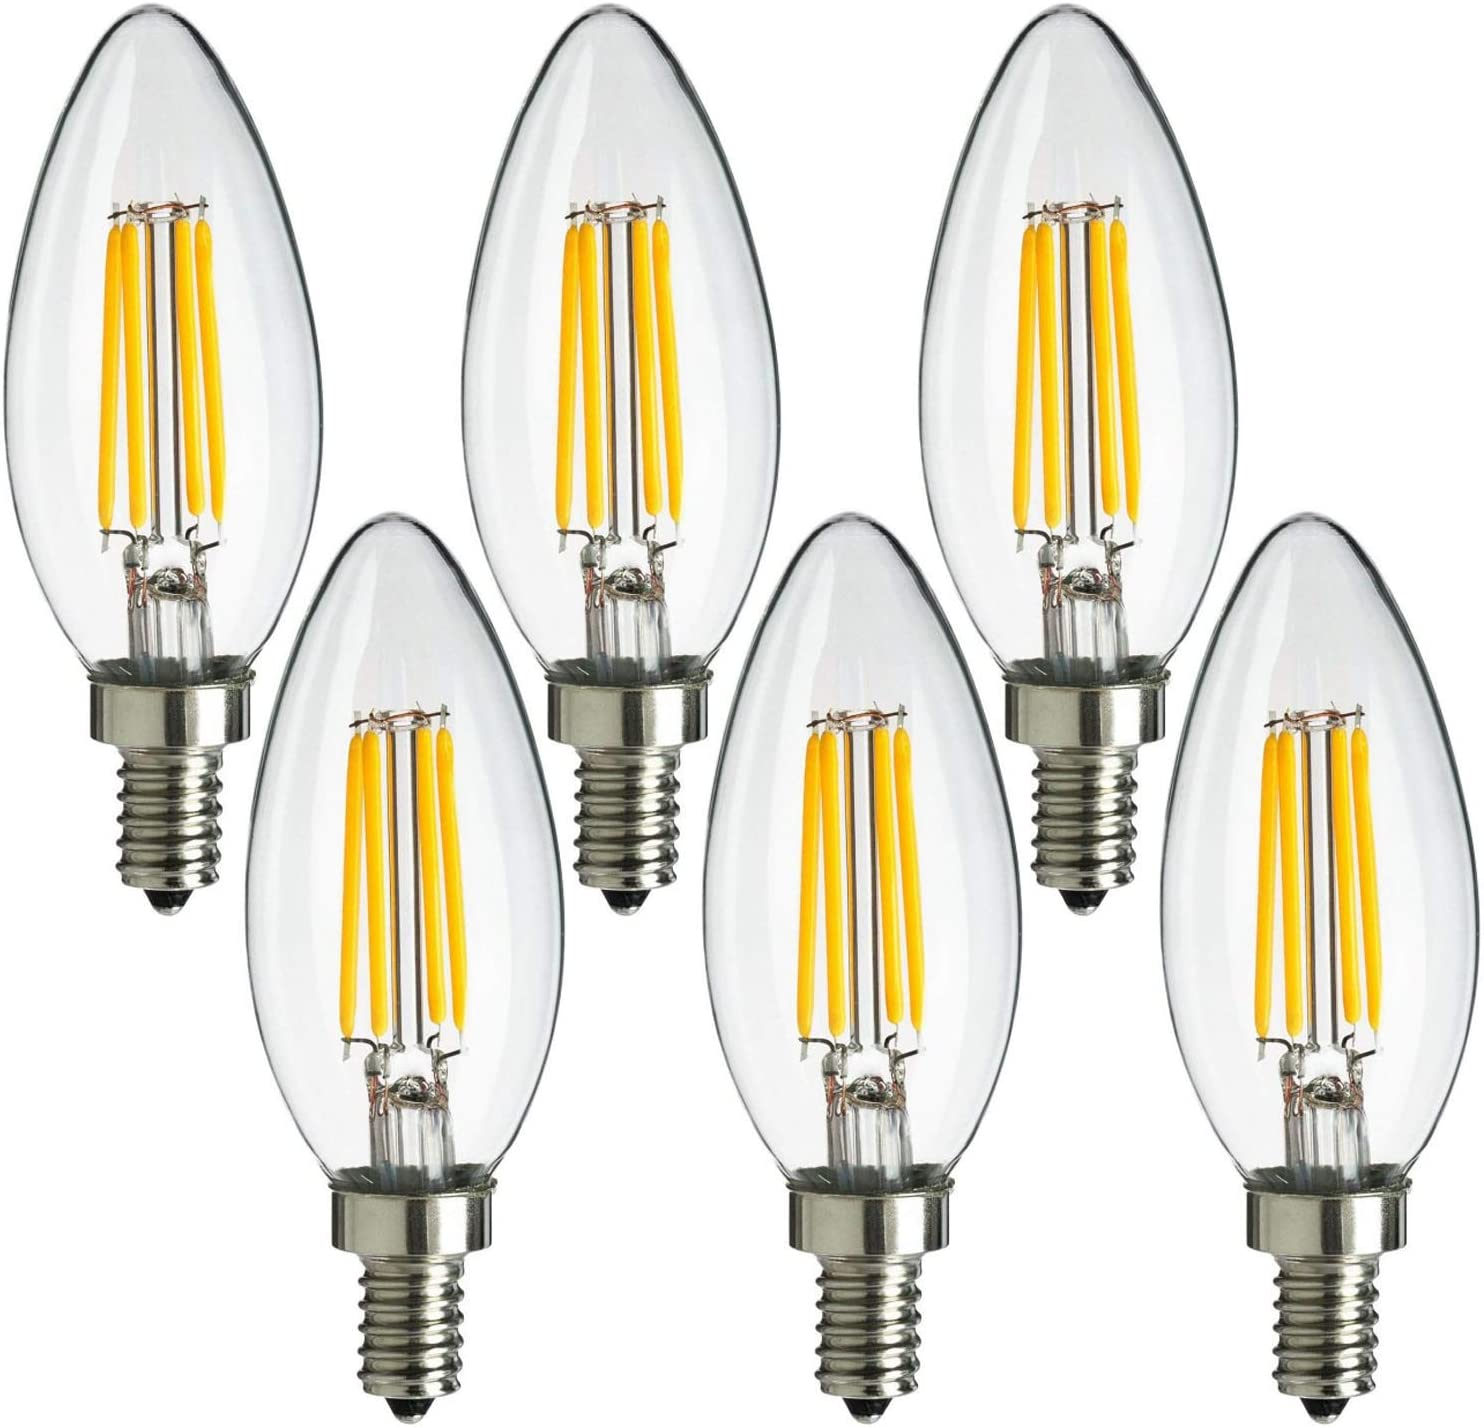 2700K Soft White 40W Equivalent Wet Rated MaxLite Candelabra LED Chandelier Bulbs Enclosed Fixture Rated 6-Pack Dimmable Filament Candle Bulbs Energy Star E12 Base 300 Lumens